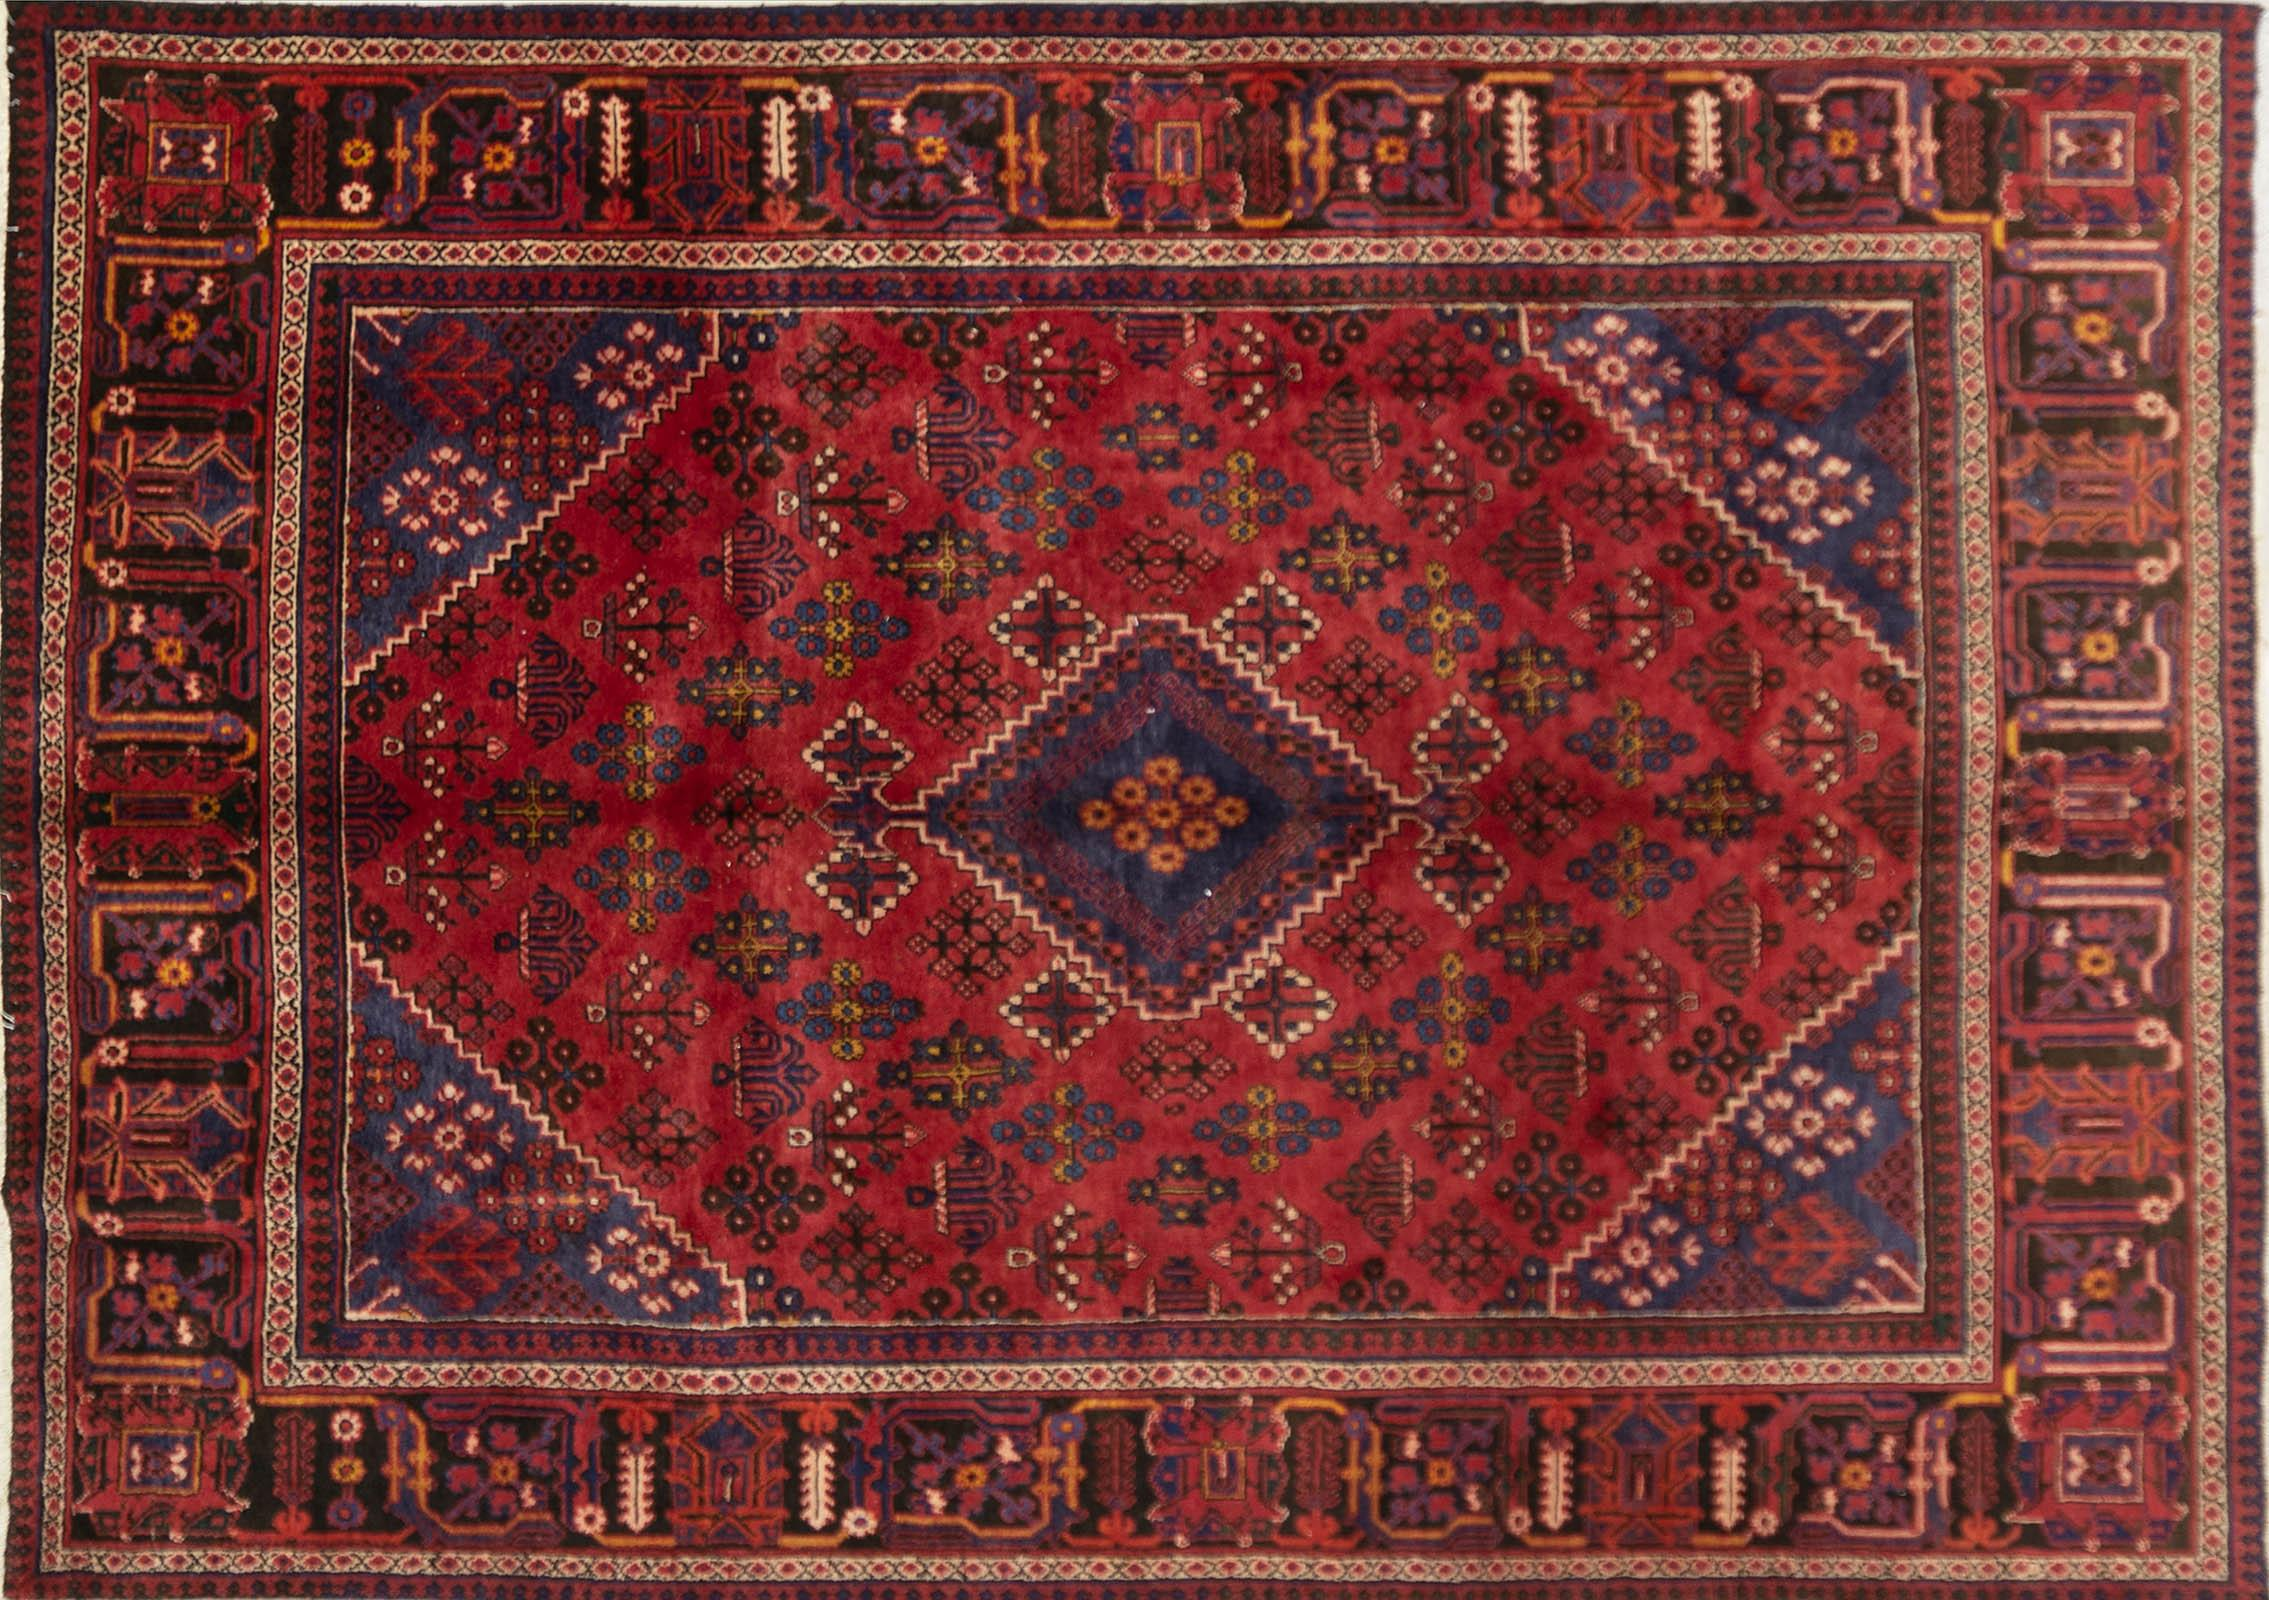 A Persian Hand Knotted Joshegan Carpet, 325 x 280